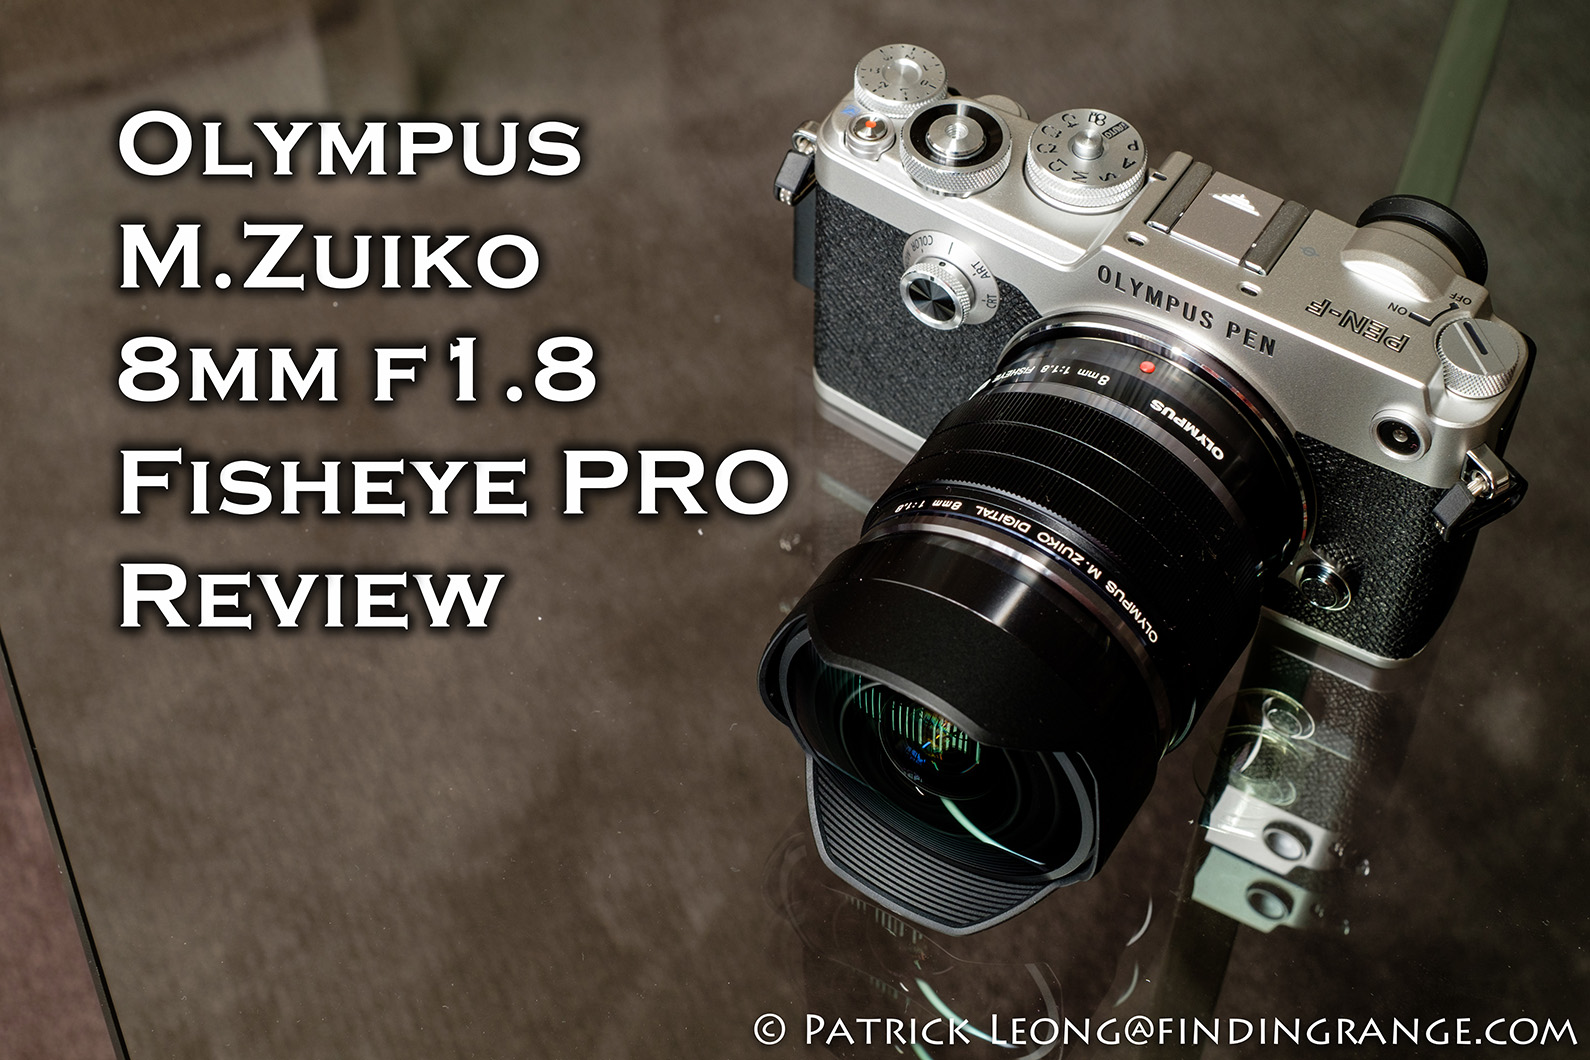 Olympus-Pen-F-M.ZUIKO-8mm-f1.8-Fisheye-PRO-Review-3